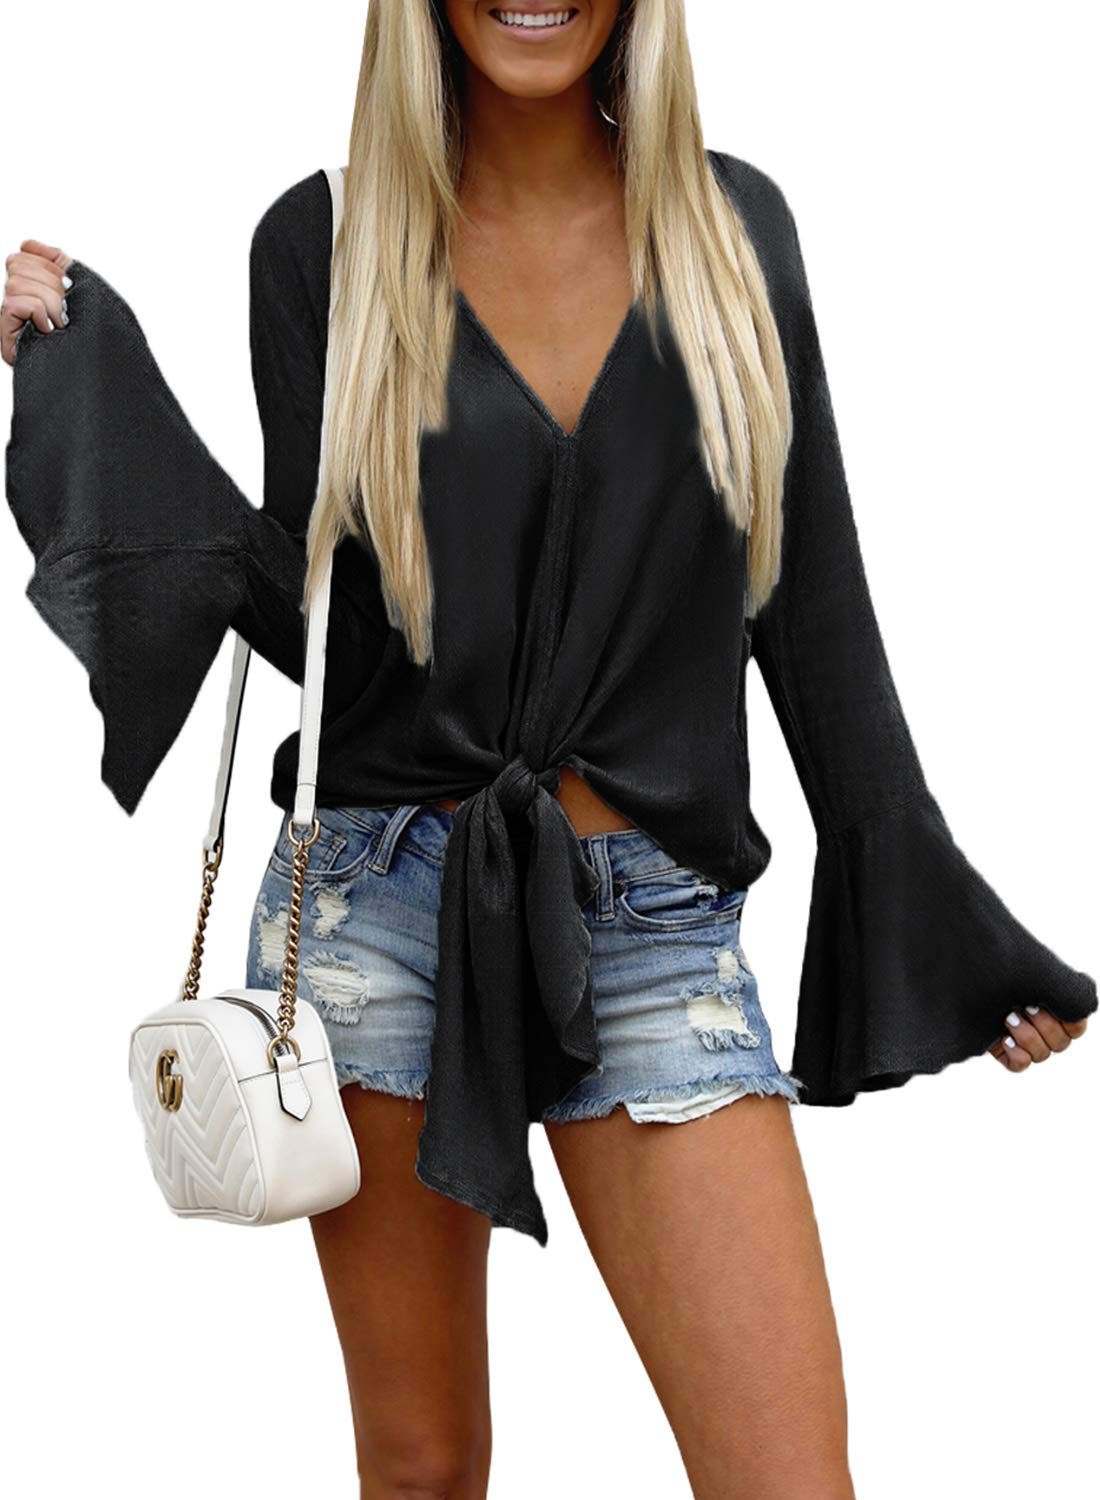 FARYSAYS Women's Casual Bell Long Sleeve V Neck Front Tie Knot T Shirt Tops Blouse Black X-Large